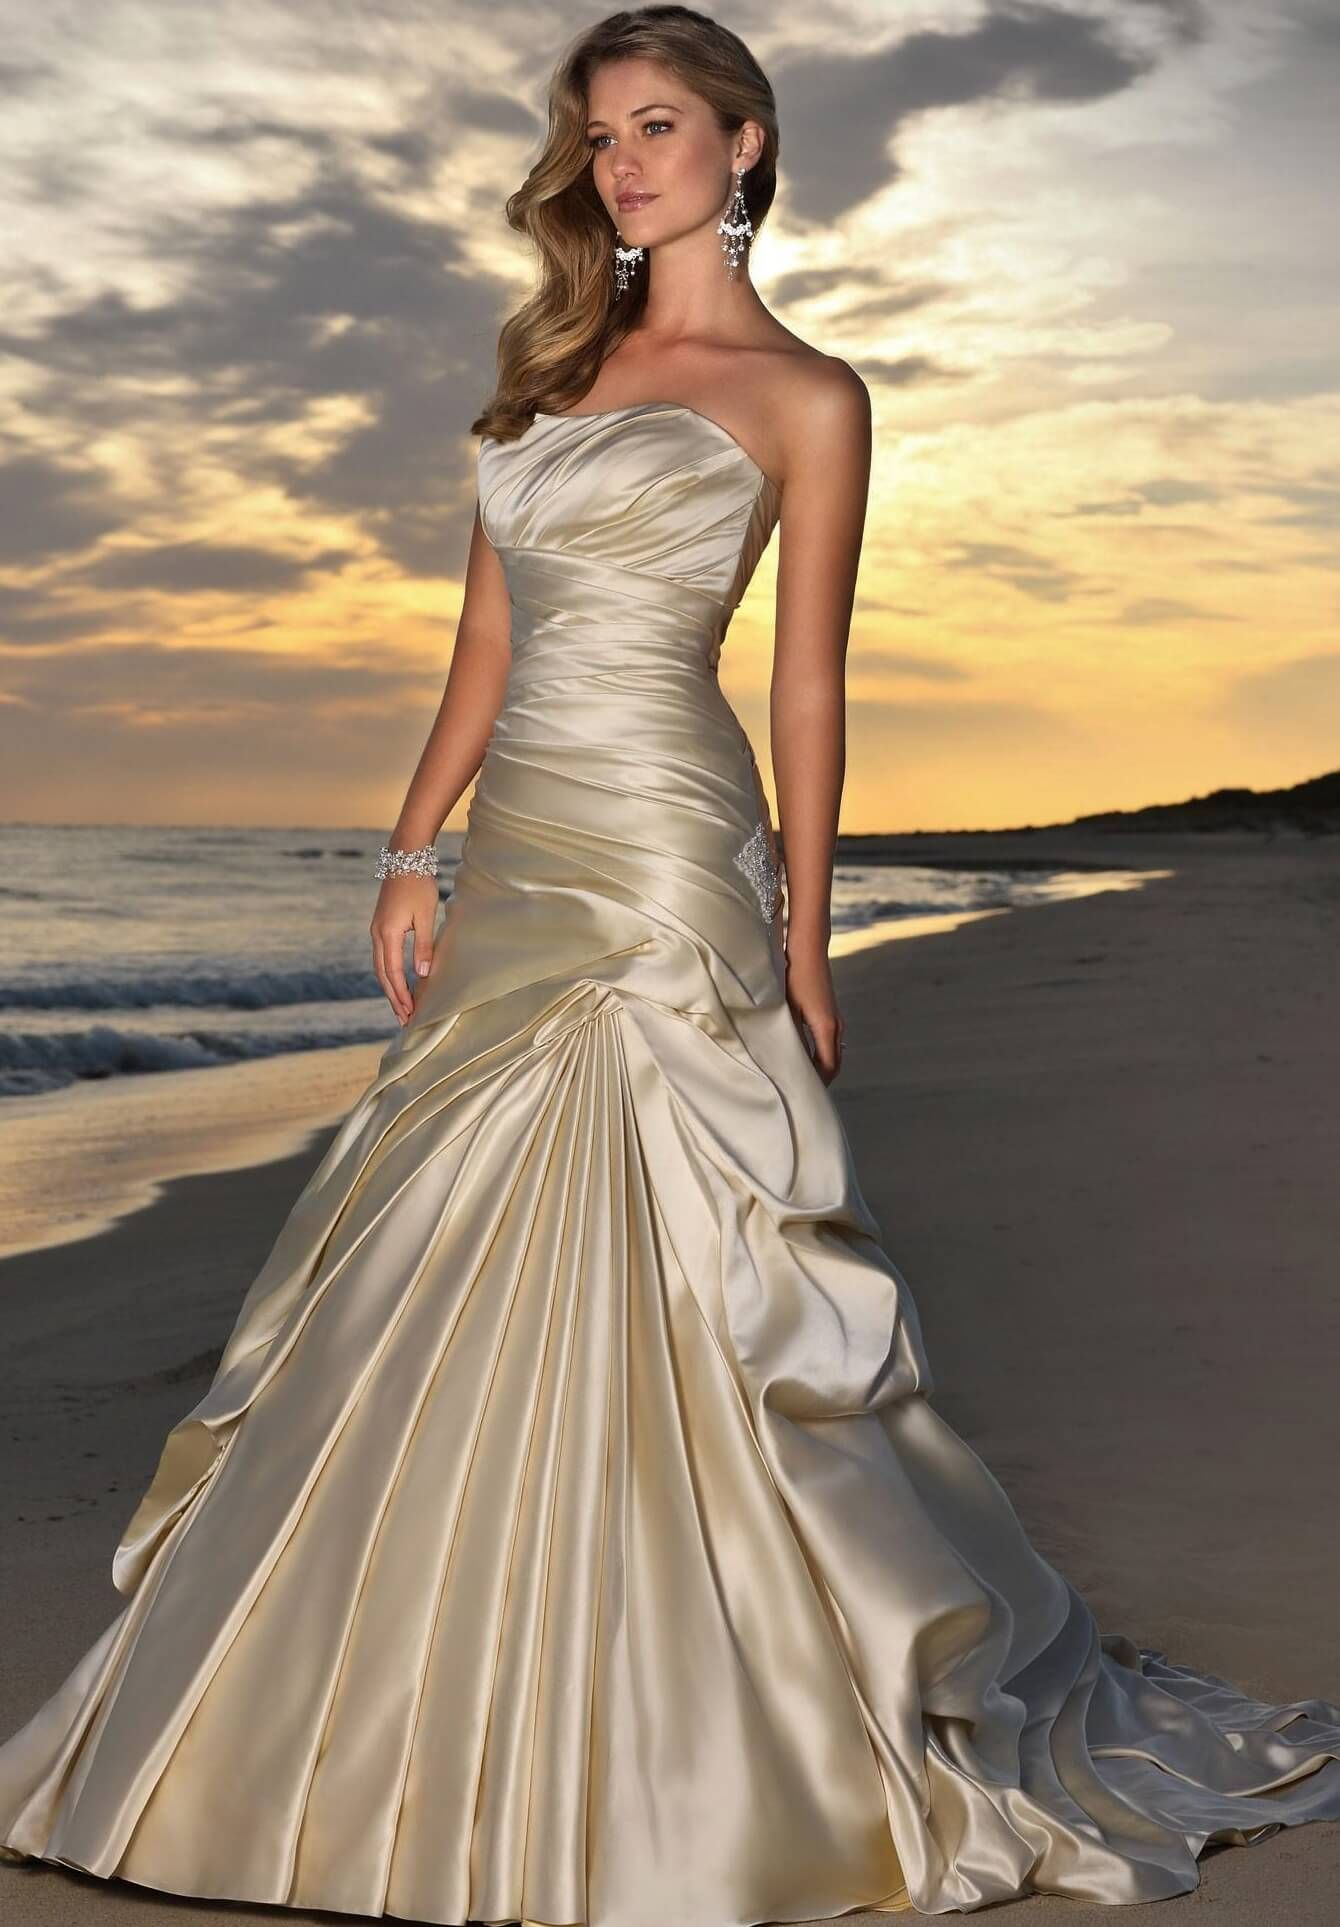 Image result for champagne wedding dress wedding vow renewal image result for champagne wedding dress ombrellifo Image collections